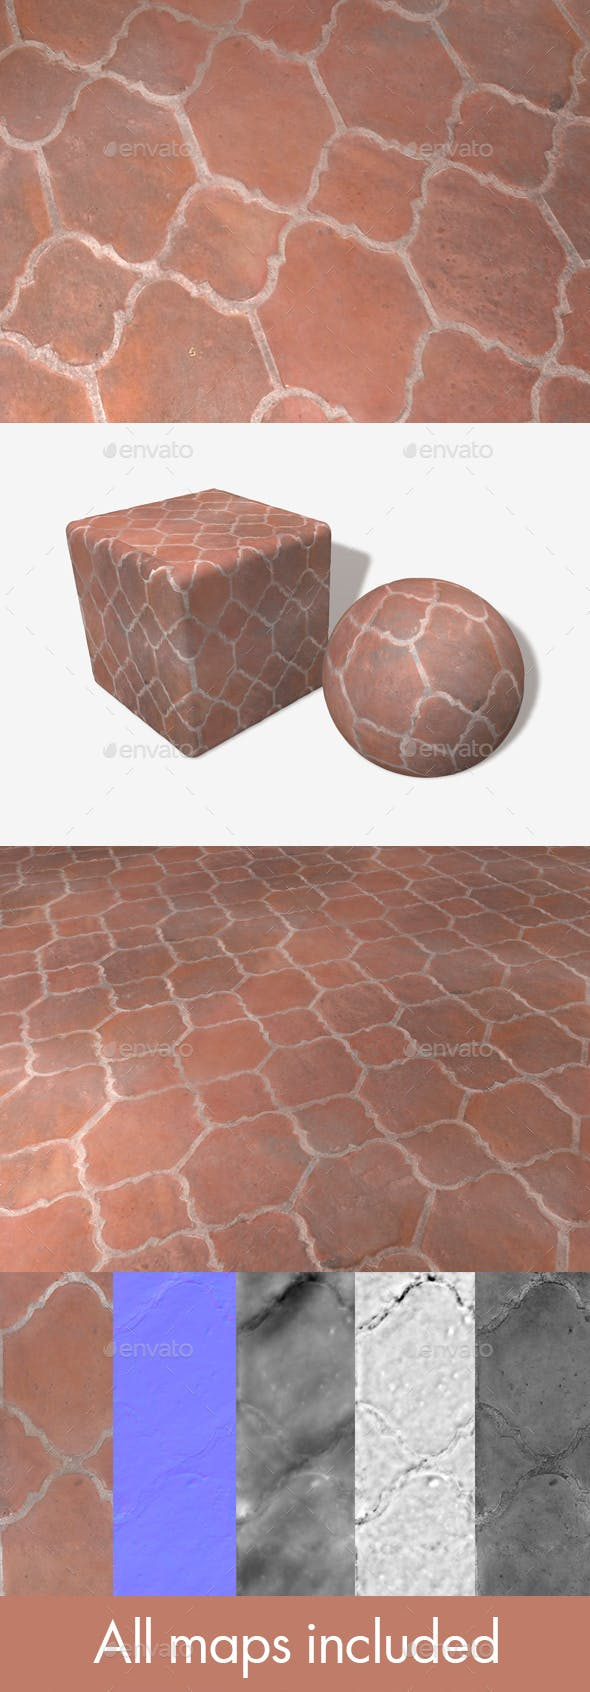 Fancy Terracotta Floor Tiles Seamless Texture - 3DOcean Item for Sale